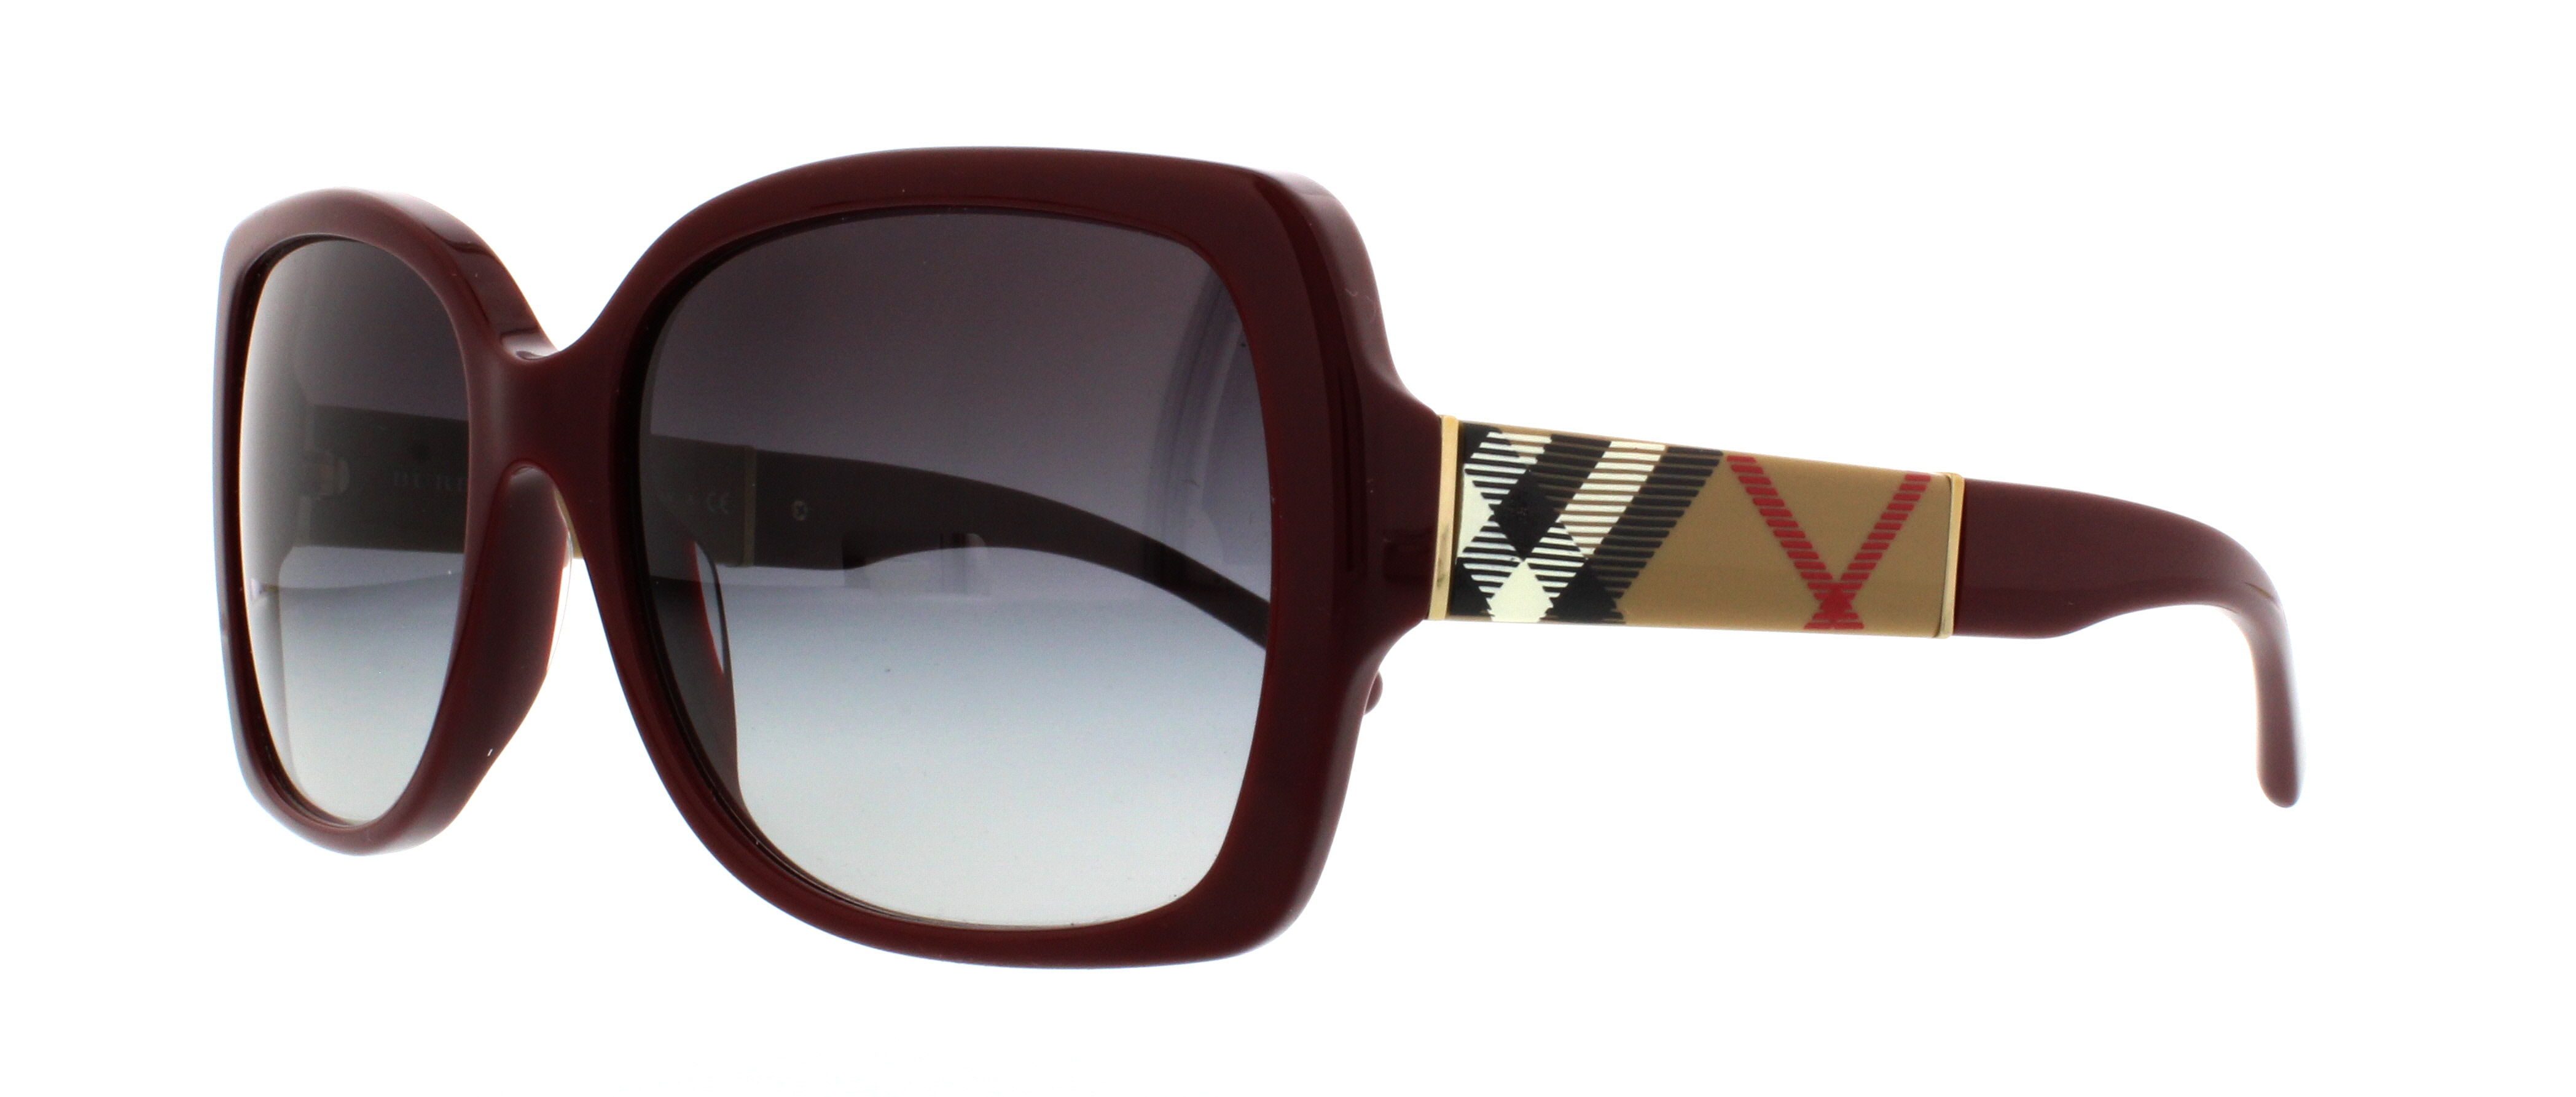 35c45b8c03 Designer Frames Outlet. Burberry BE4160